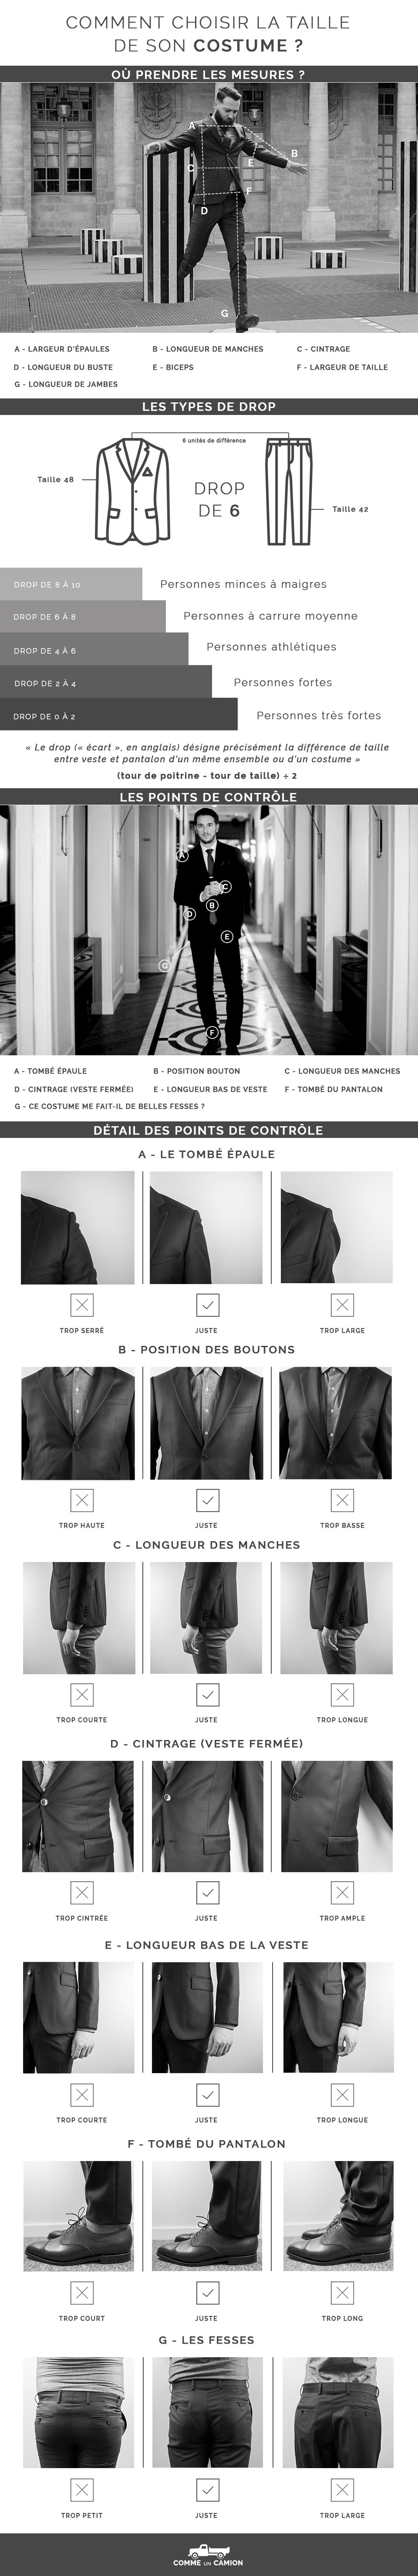 Taille Costume